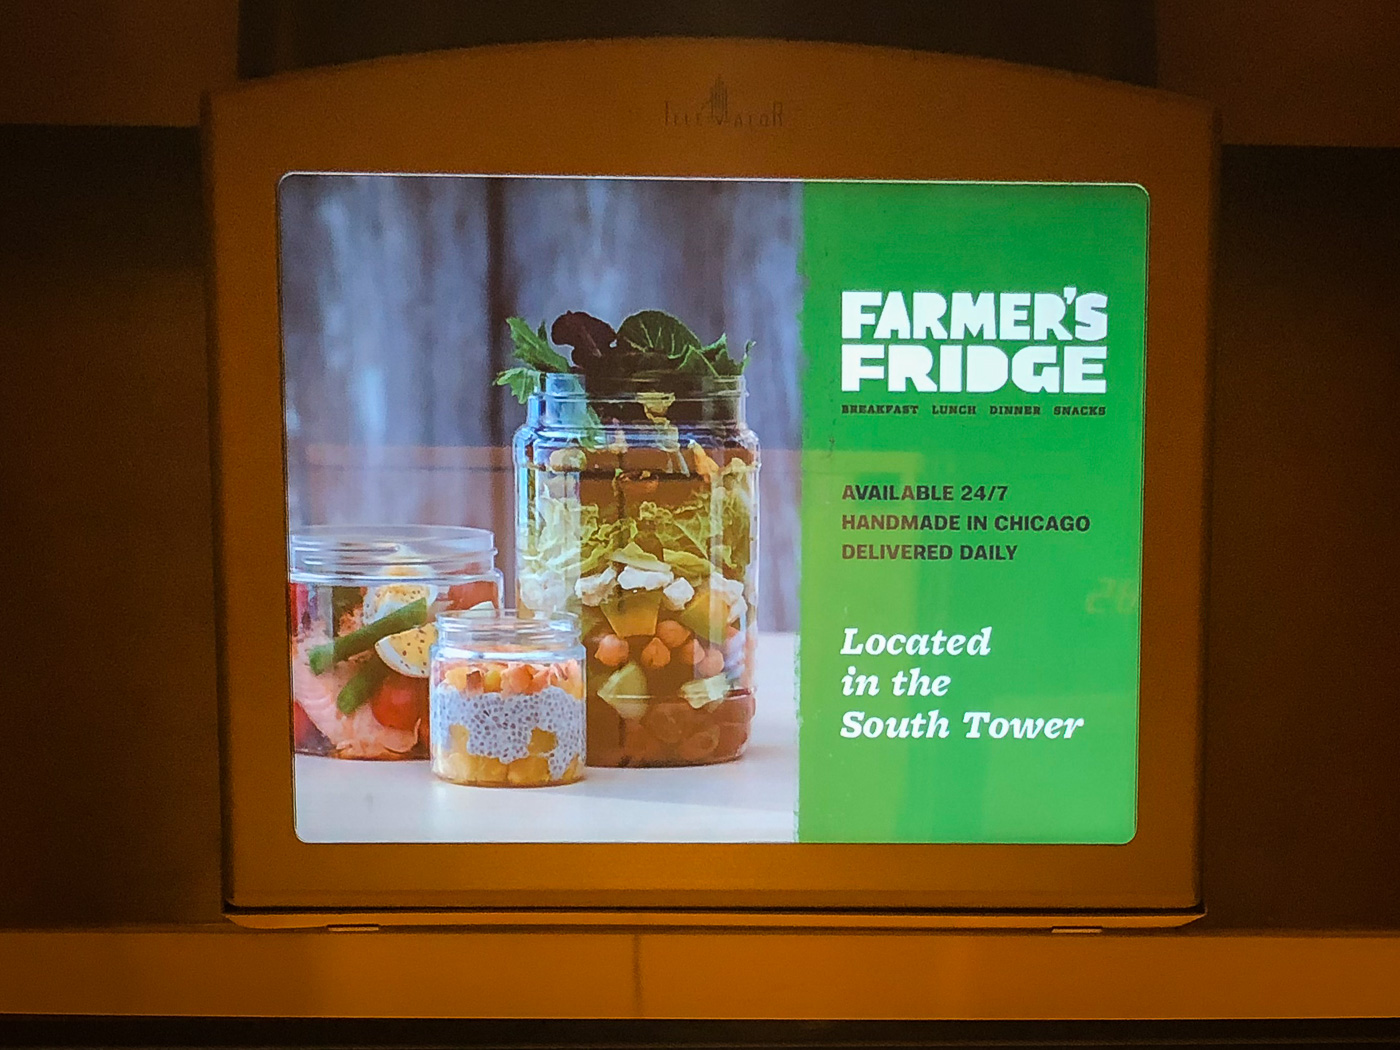 Video screen in elevator showing ad for Farmer's Fridge